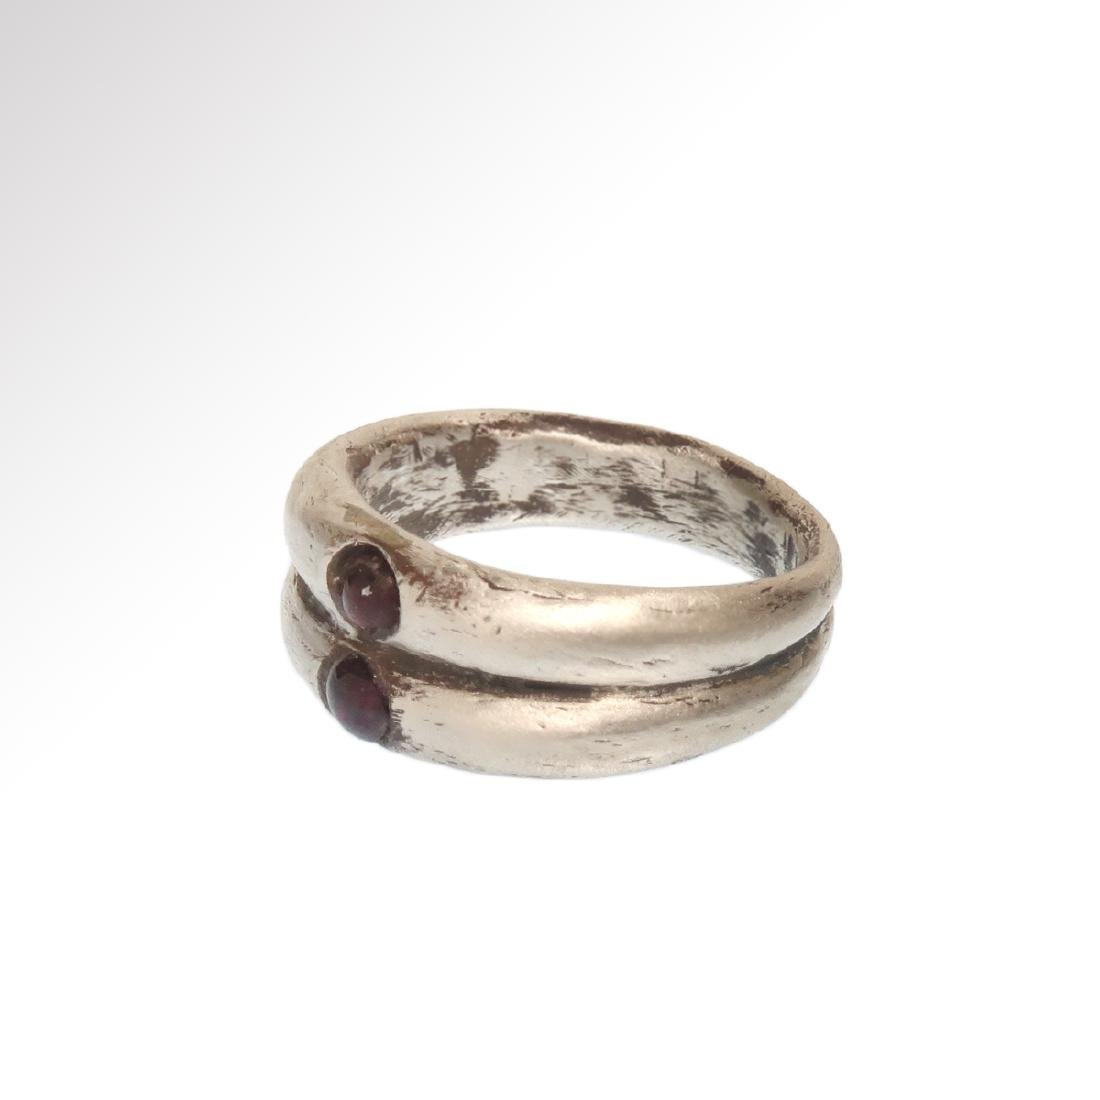 Roman Double Silver Ring with Garnets, c. 3rd Century - 5